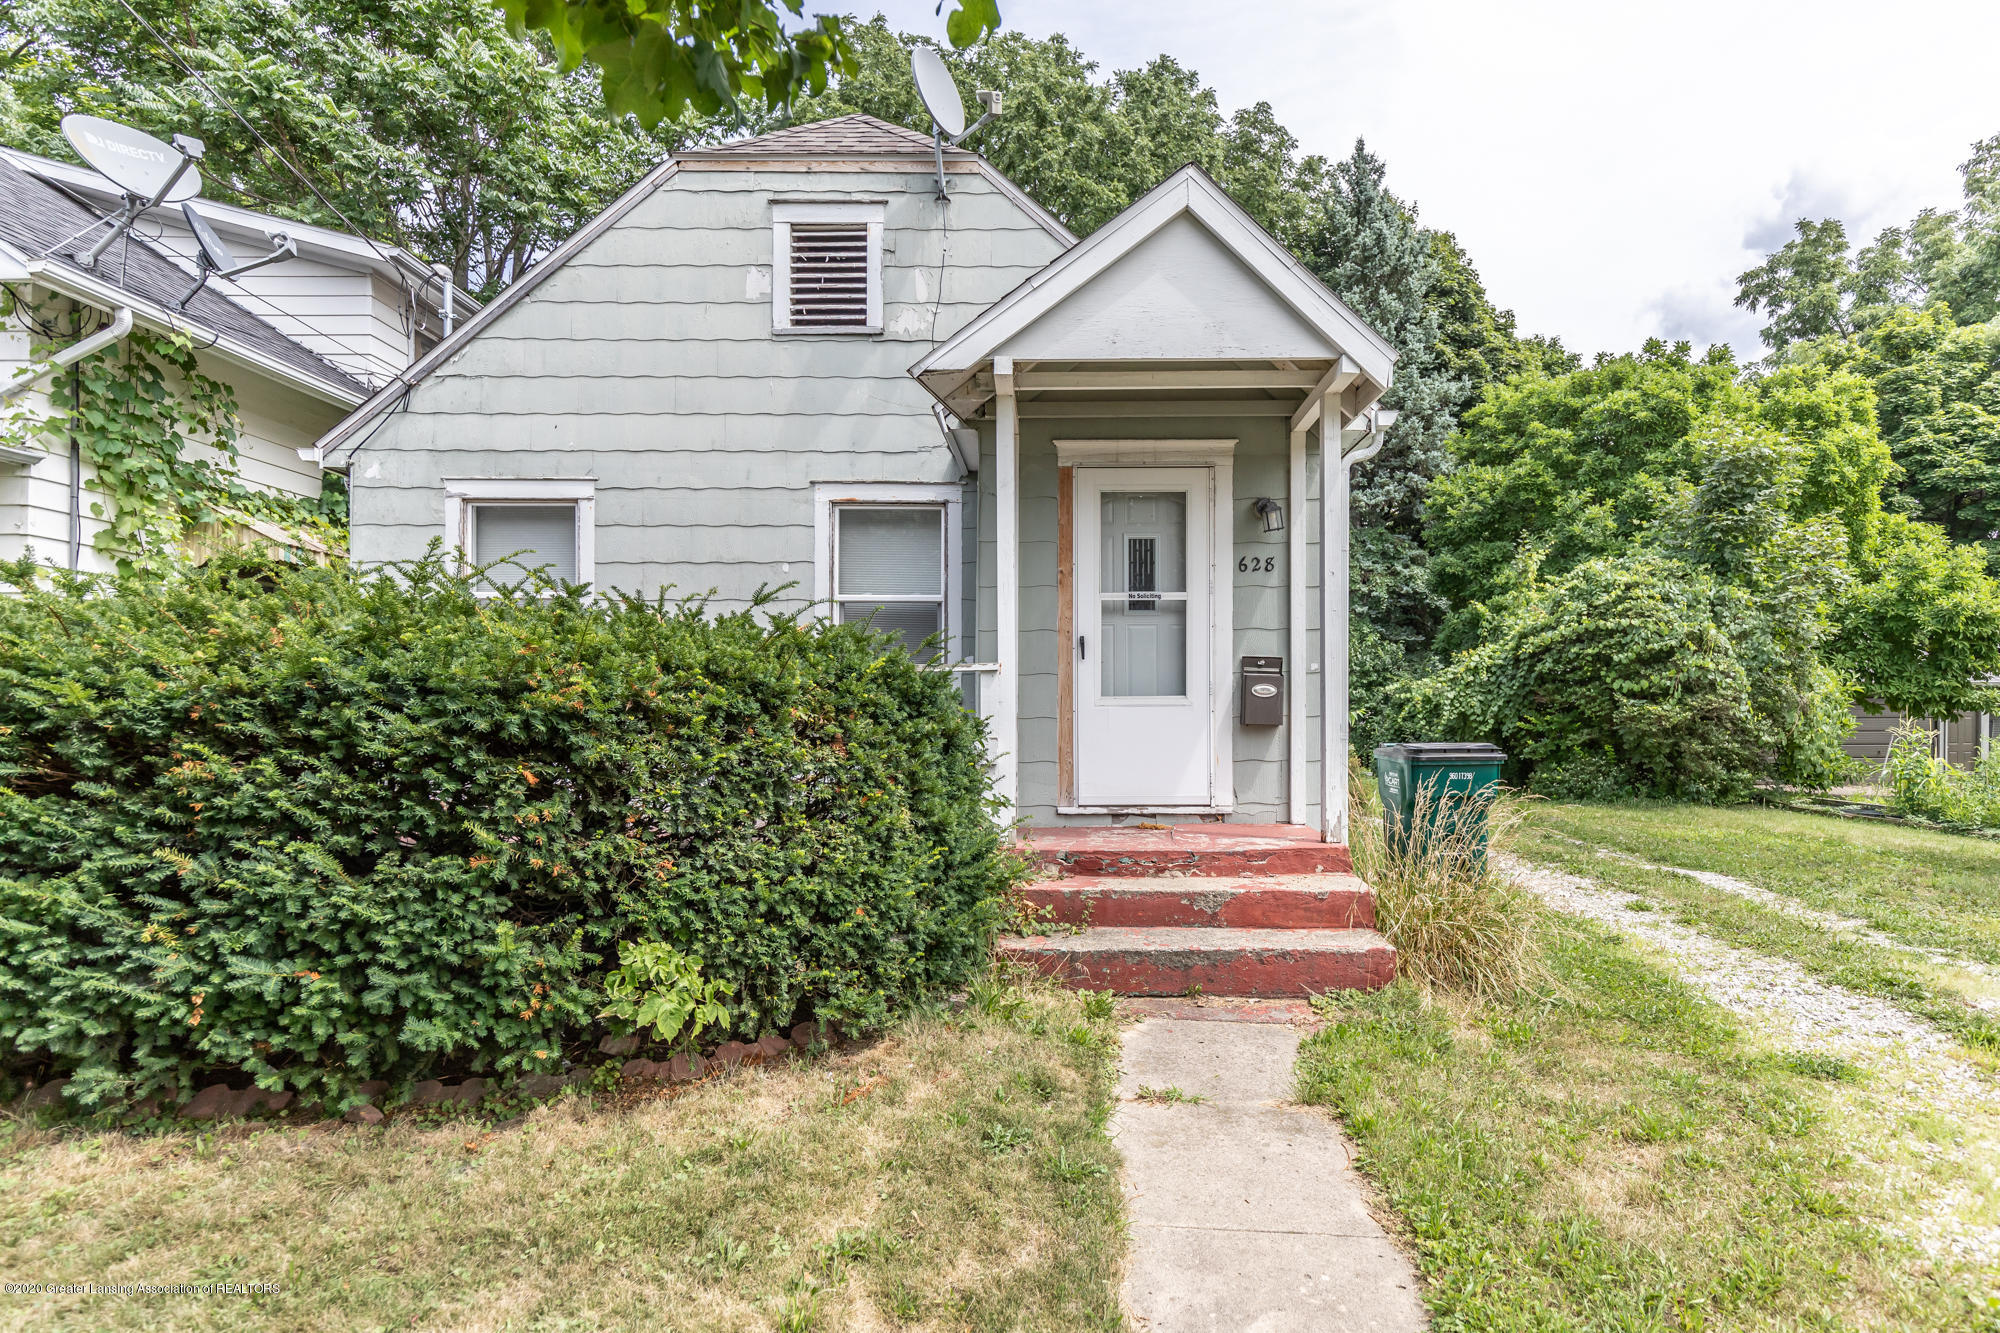 628 N Fairview Ave - fairviewfront2 (1 of 1) - 1